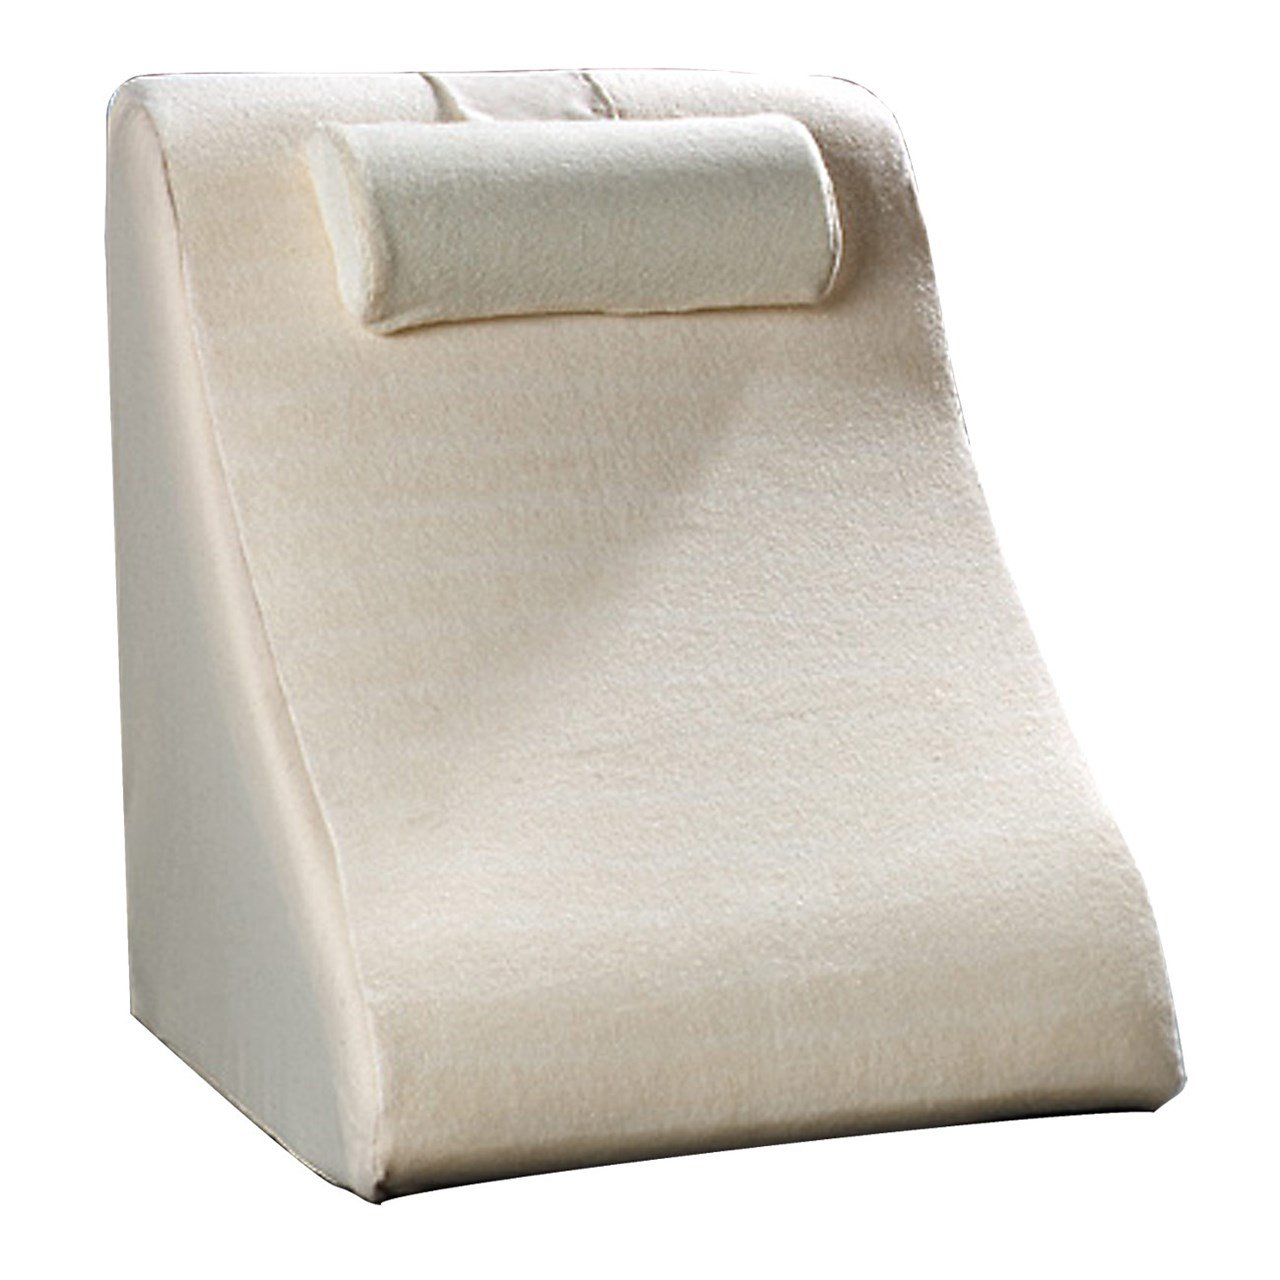 jobri spine reliever bed wedge pillow memory foam head